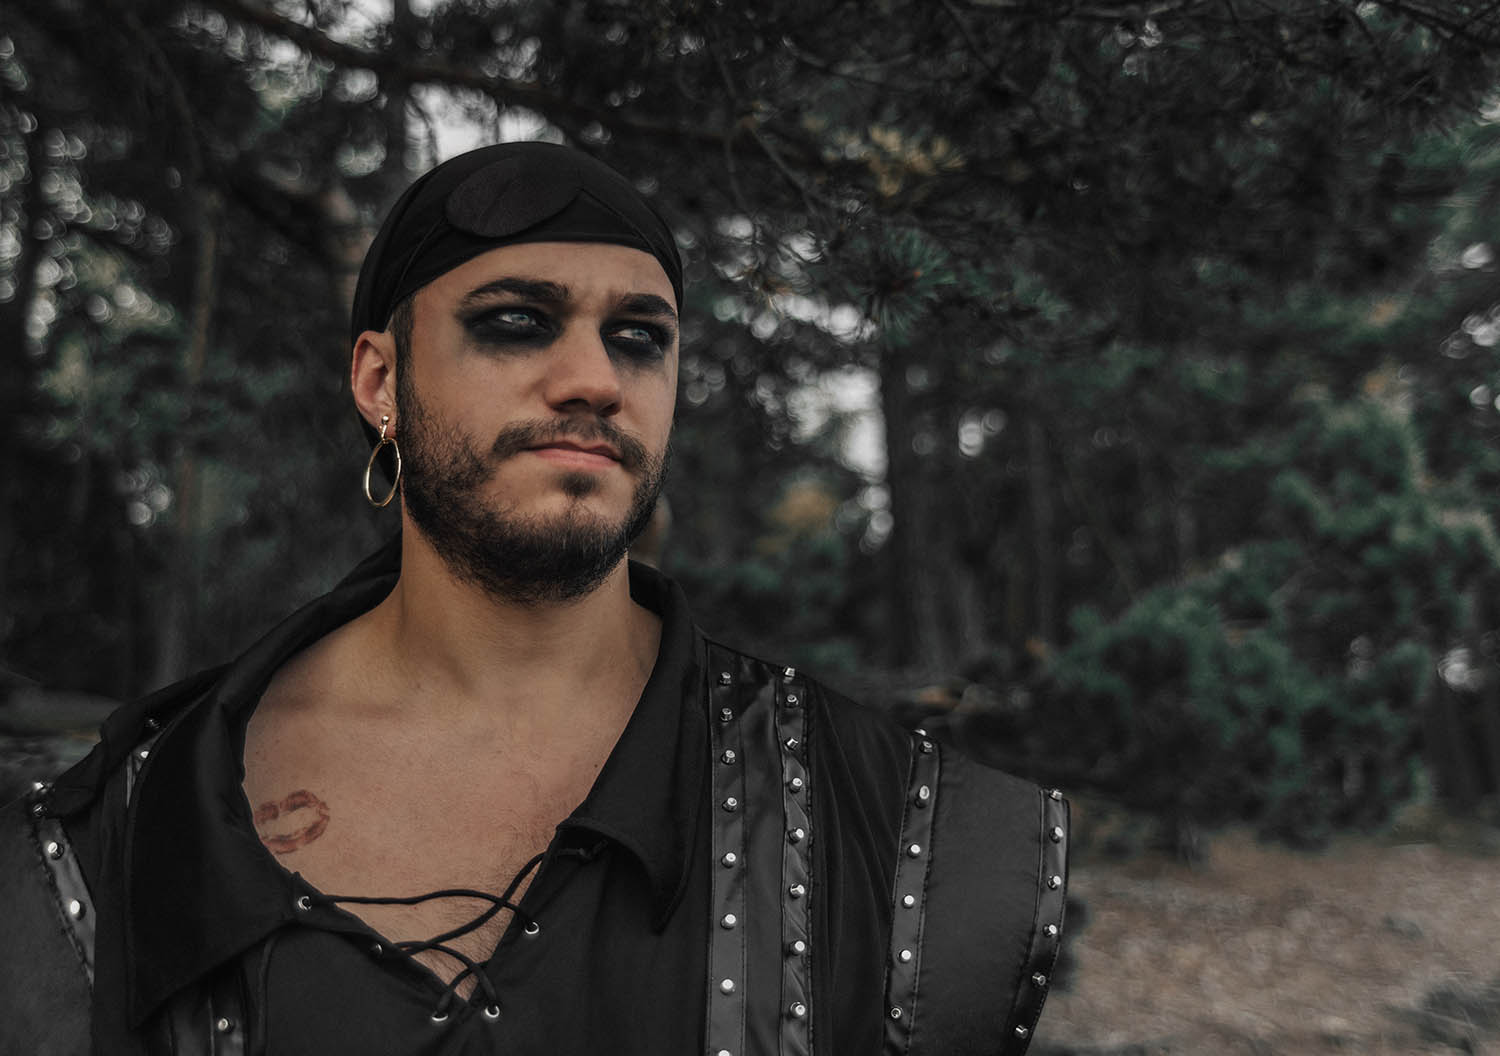 Closeup Pirate Makeup for Men